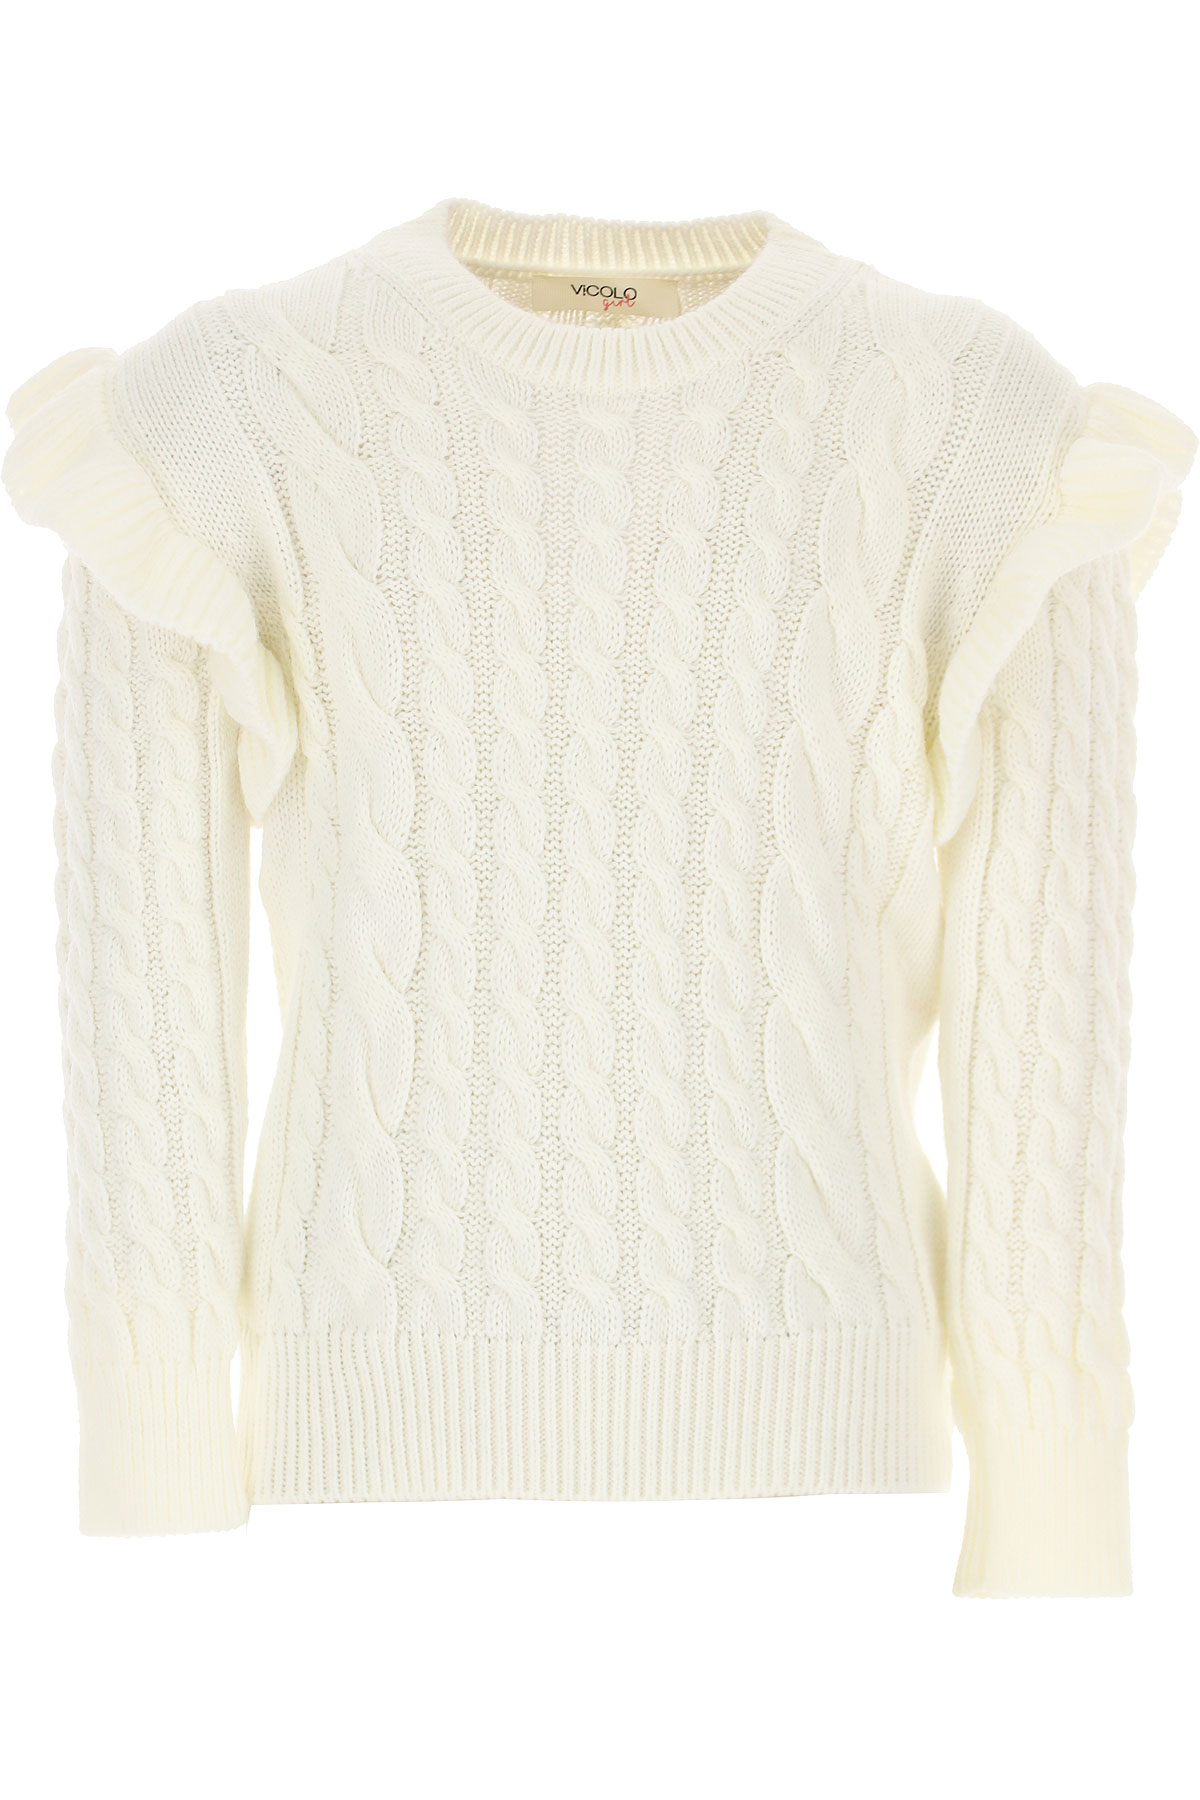 Vicolo Kids Sweaters for Girls On Sale, White, polyacrylic, 2019, 10Y 12Y 6Y